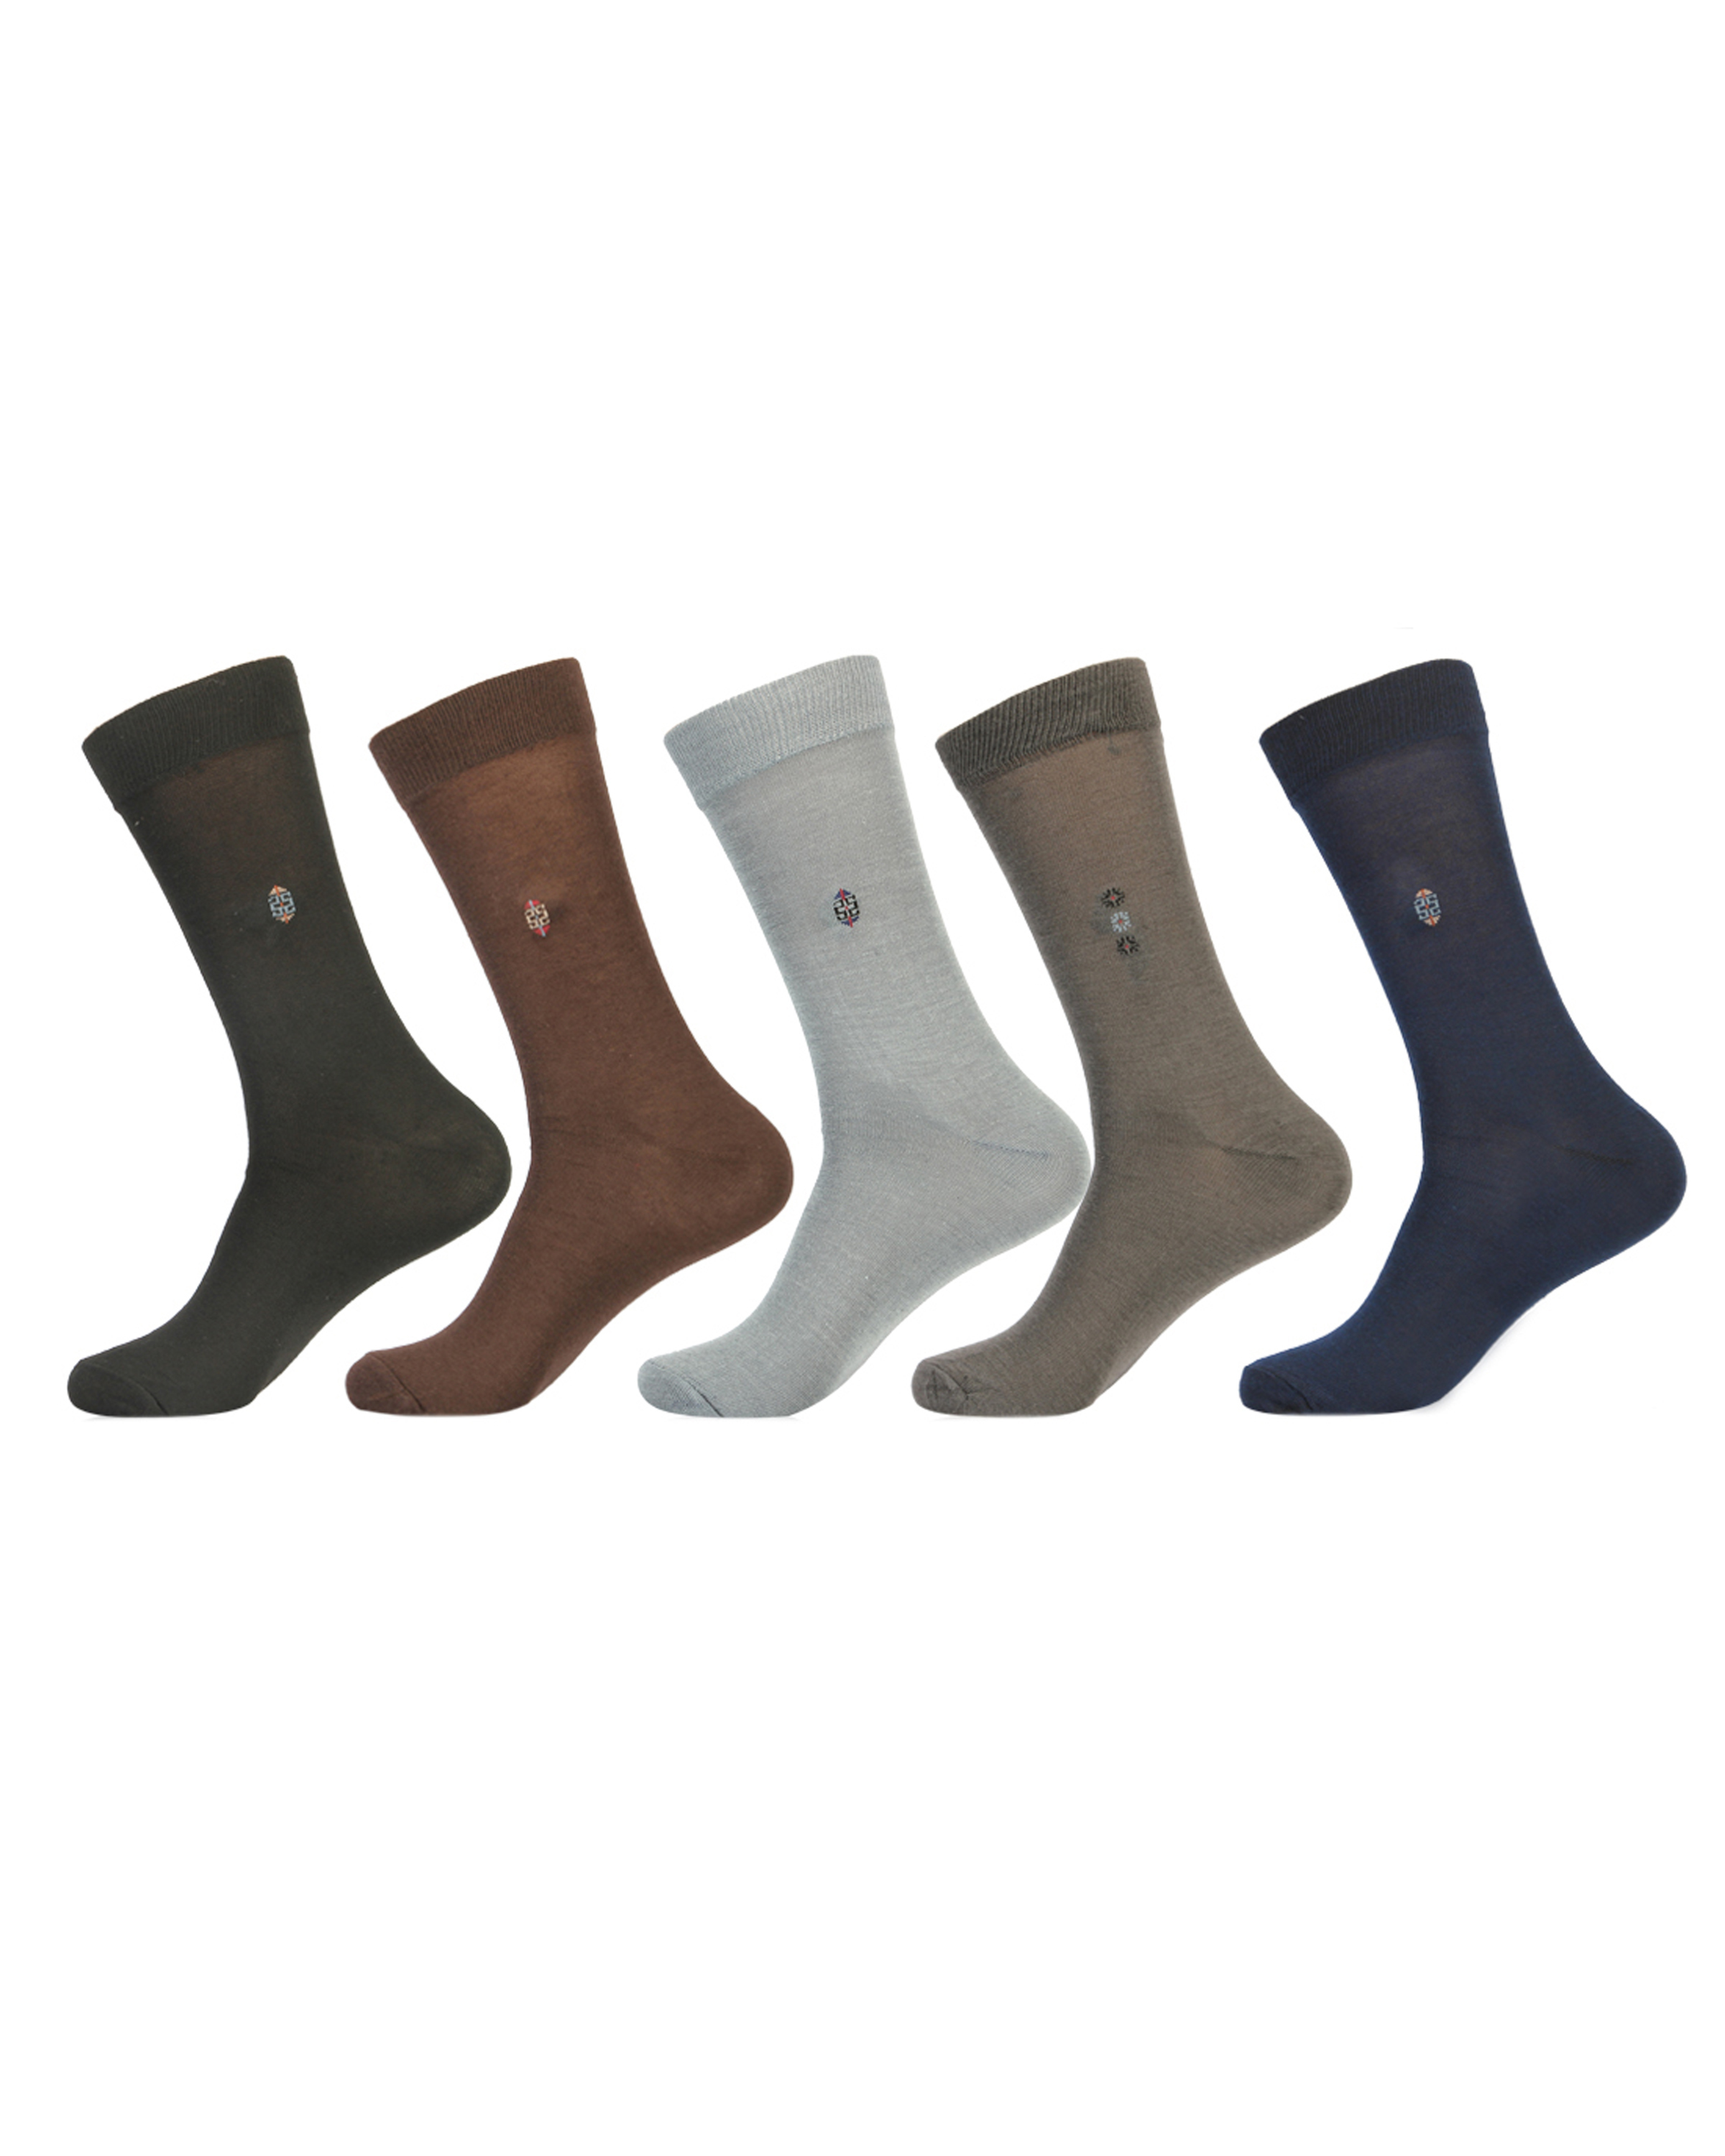 Director Centered Fine Weaved Elite Calf Socks